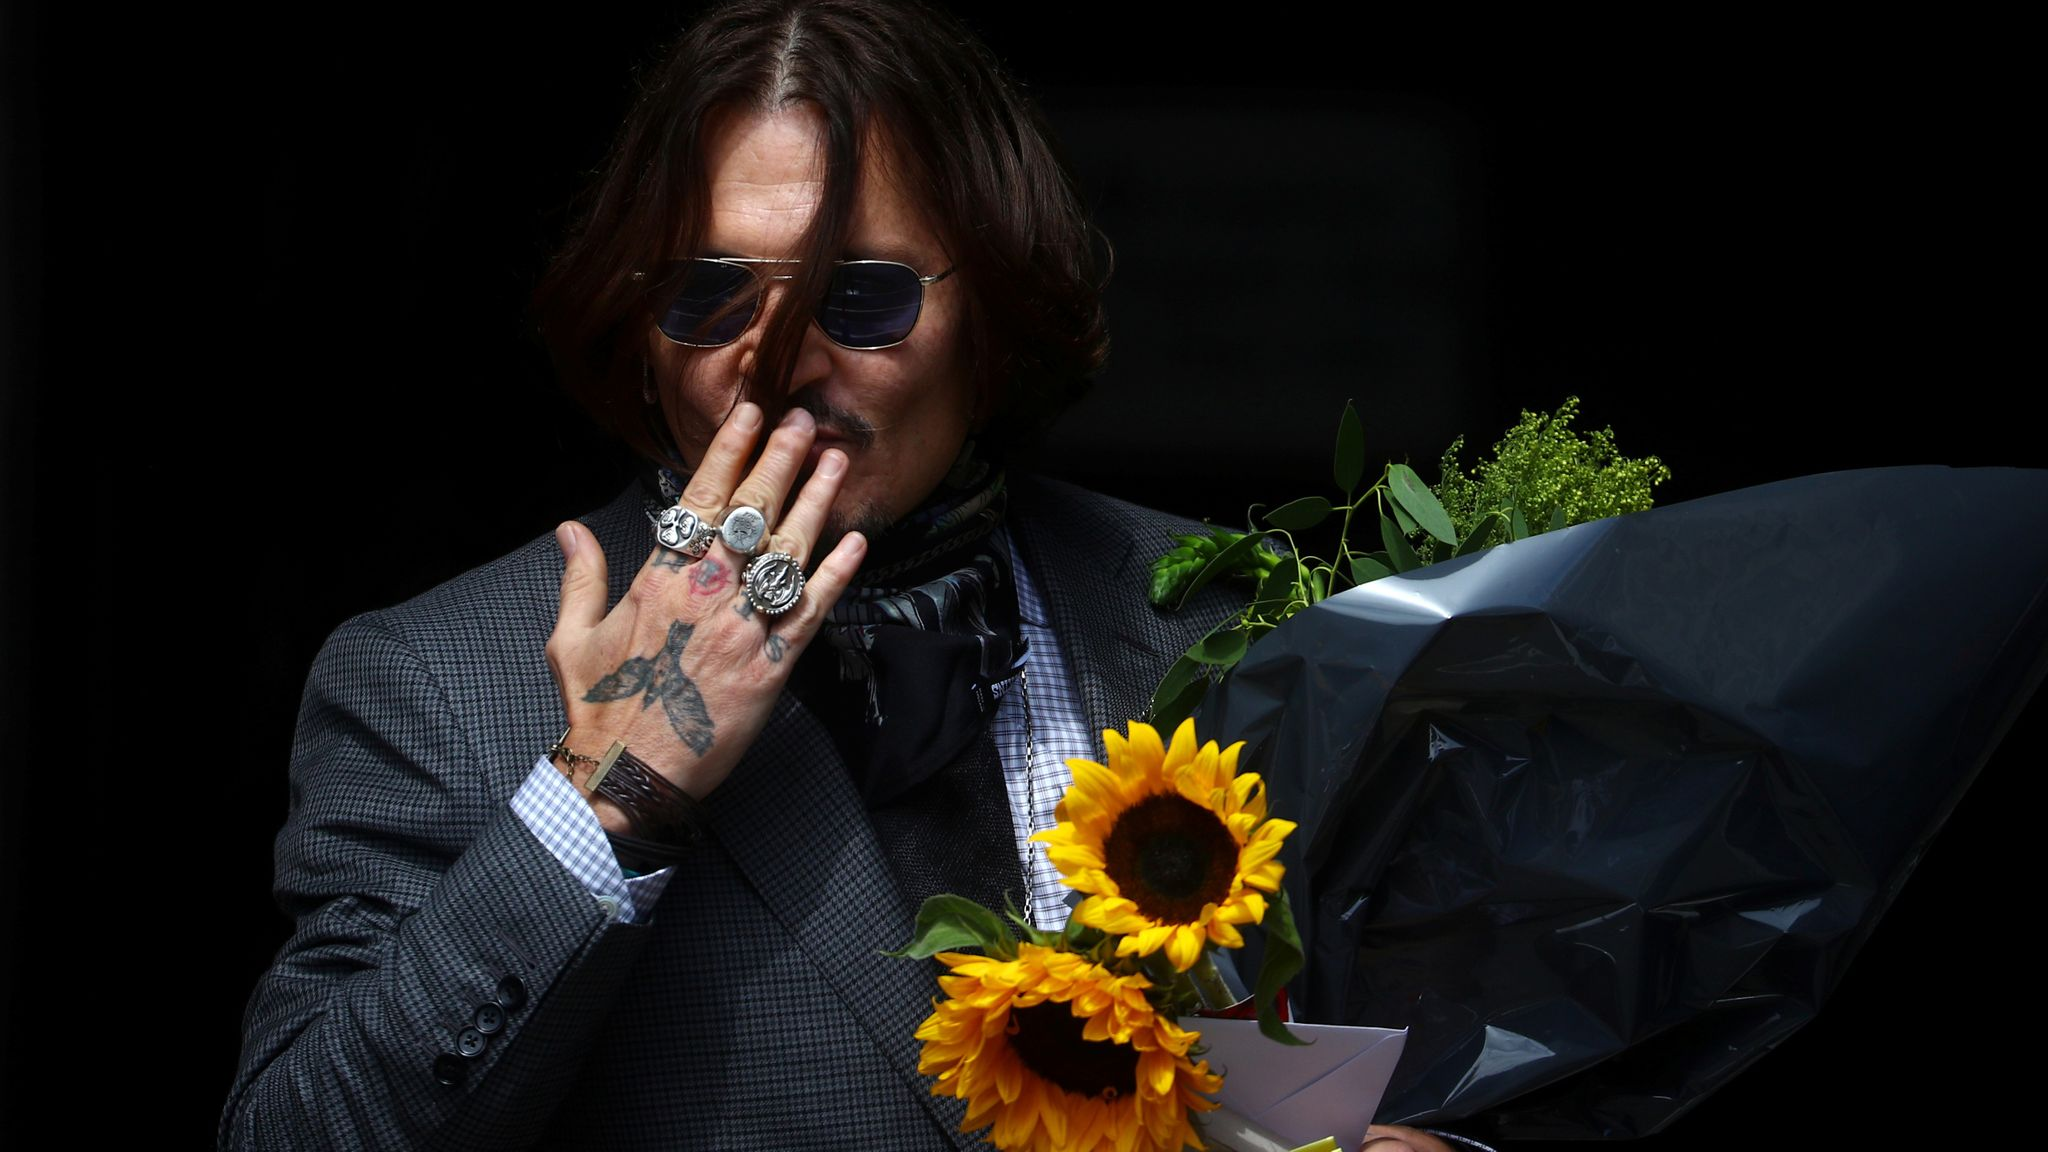 Johnny Depp arriving at the High Court on 23 July